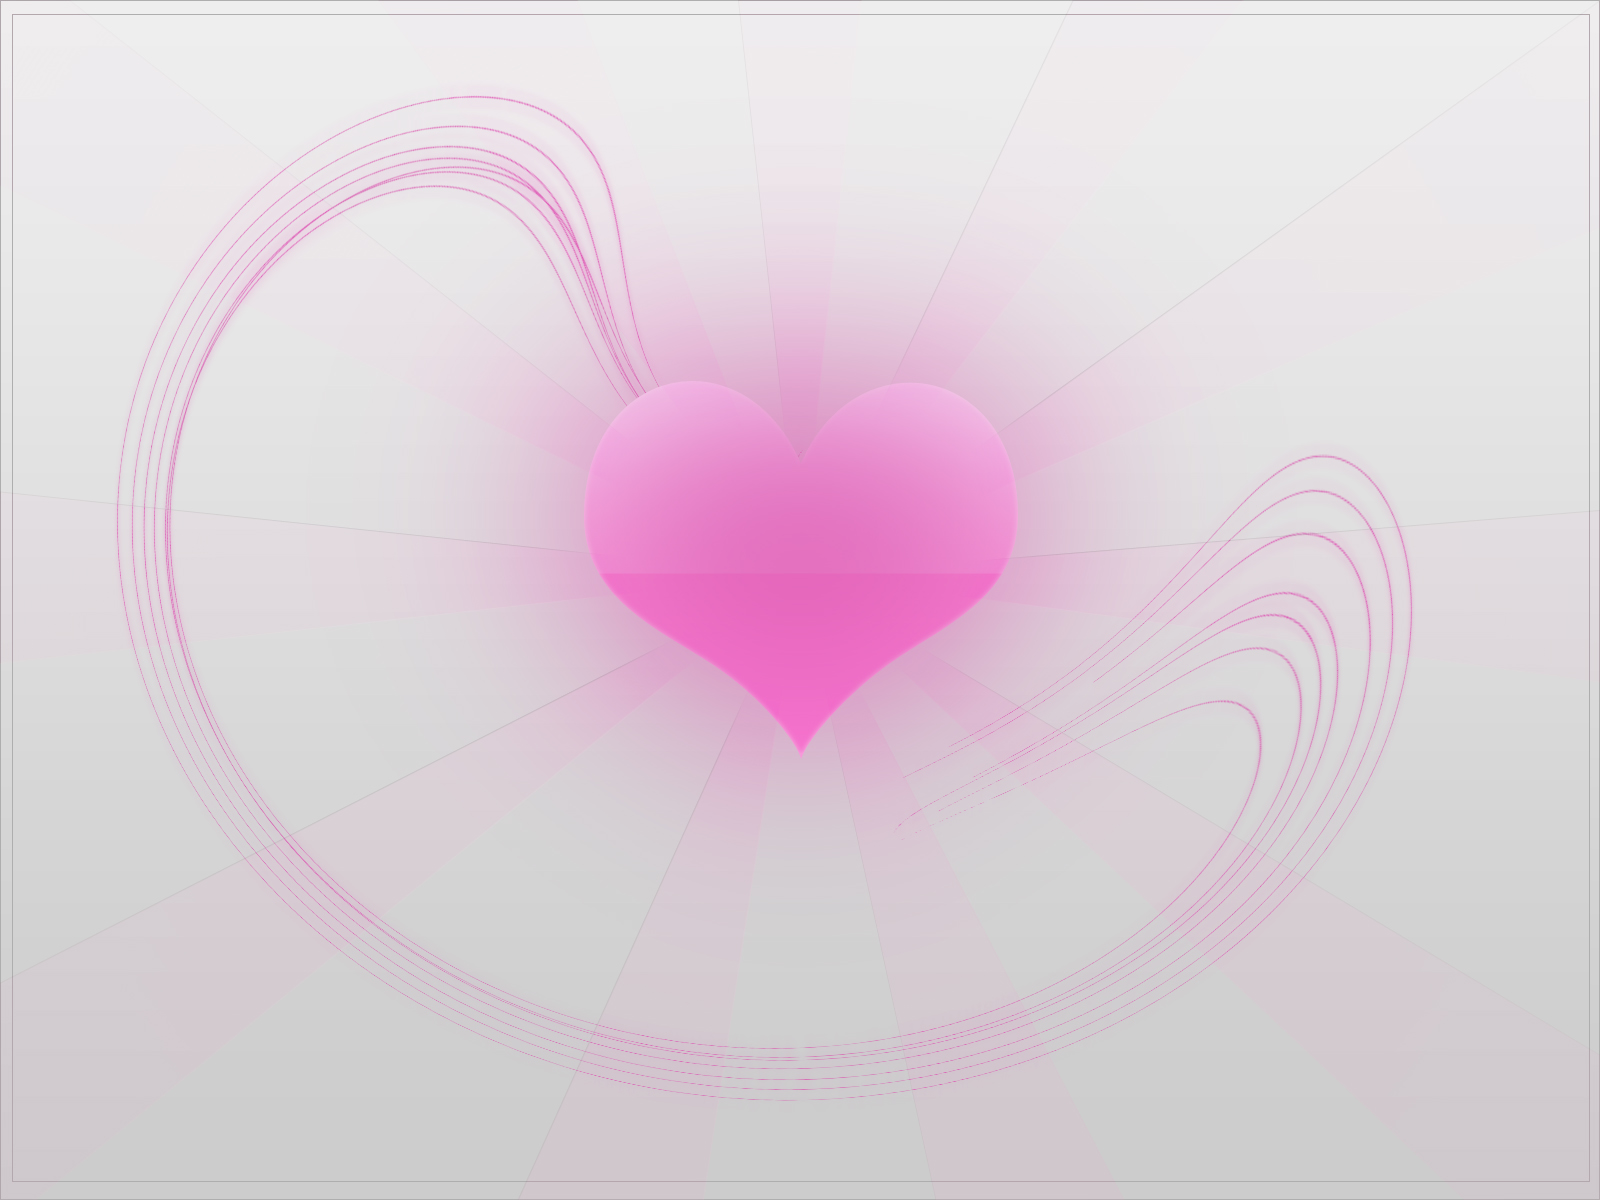 Check back soon for the other wallpapers as Valentines Day draws nearer!